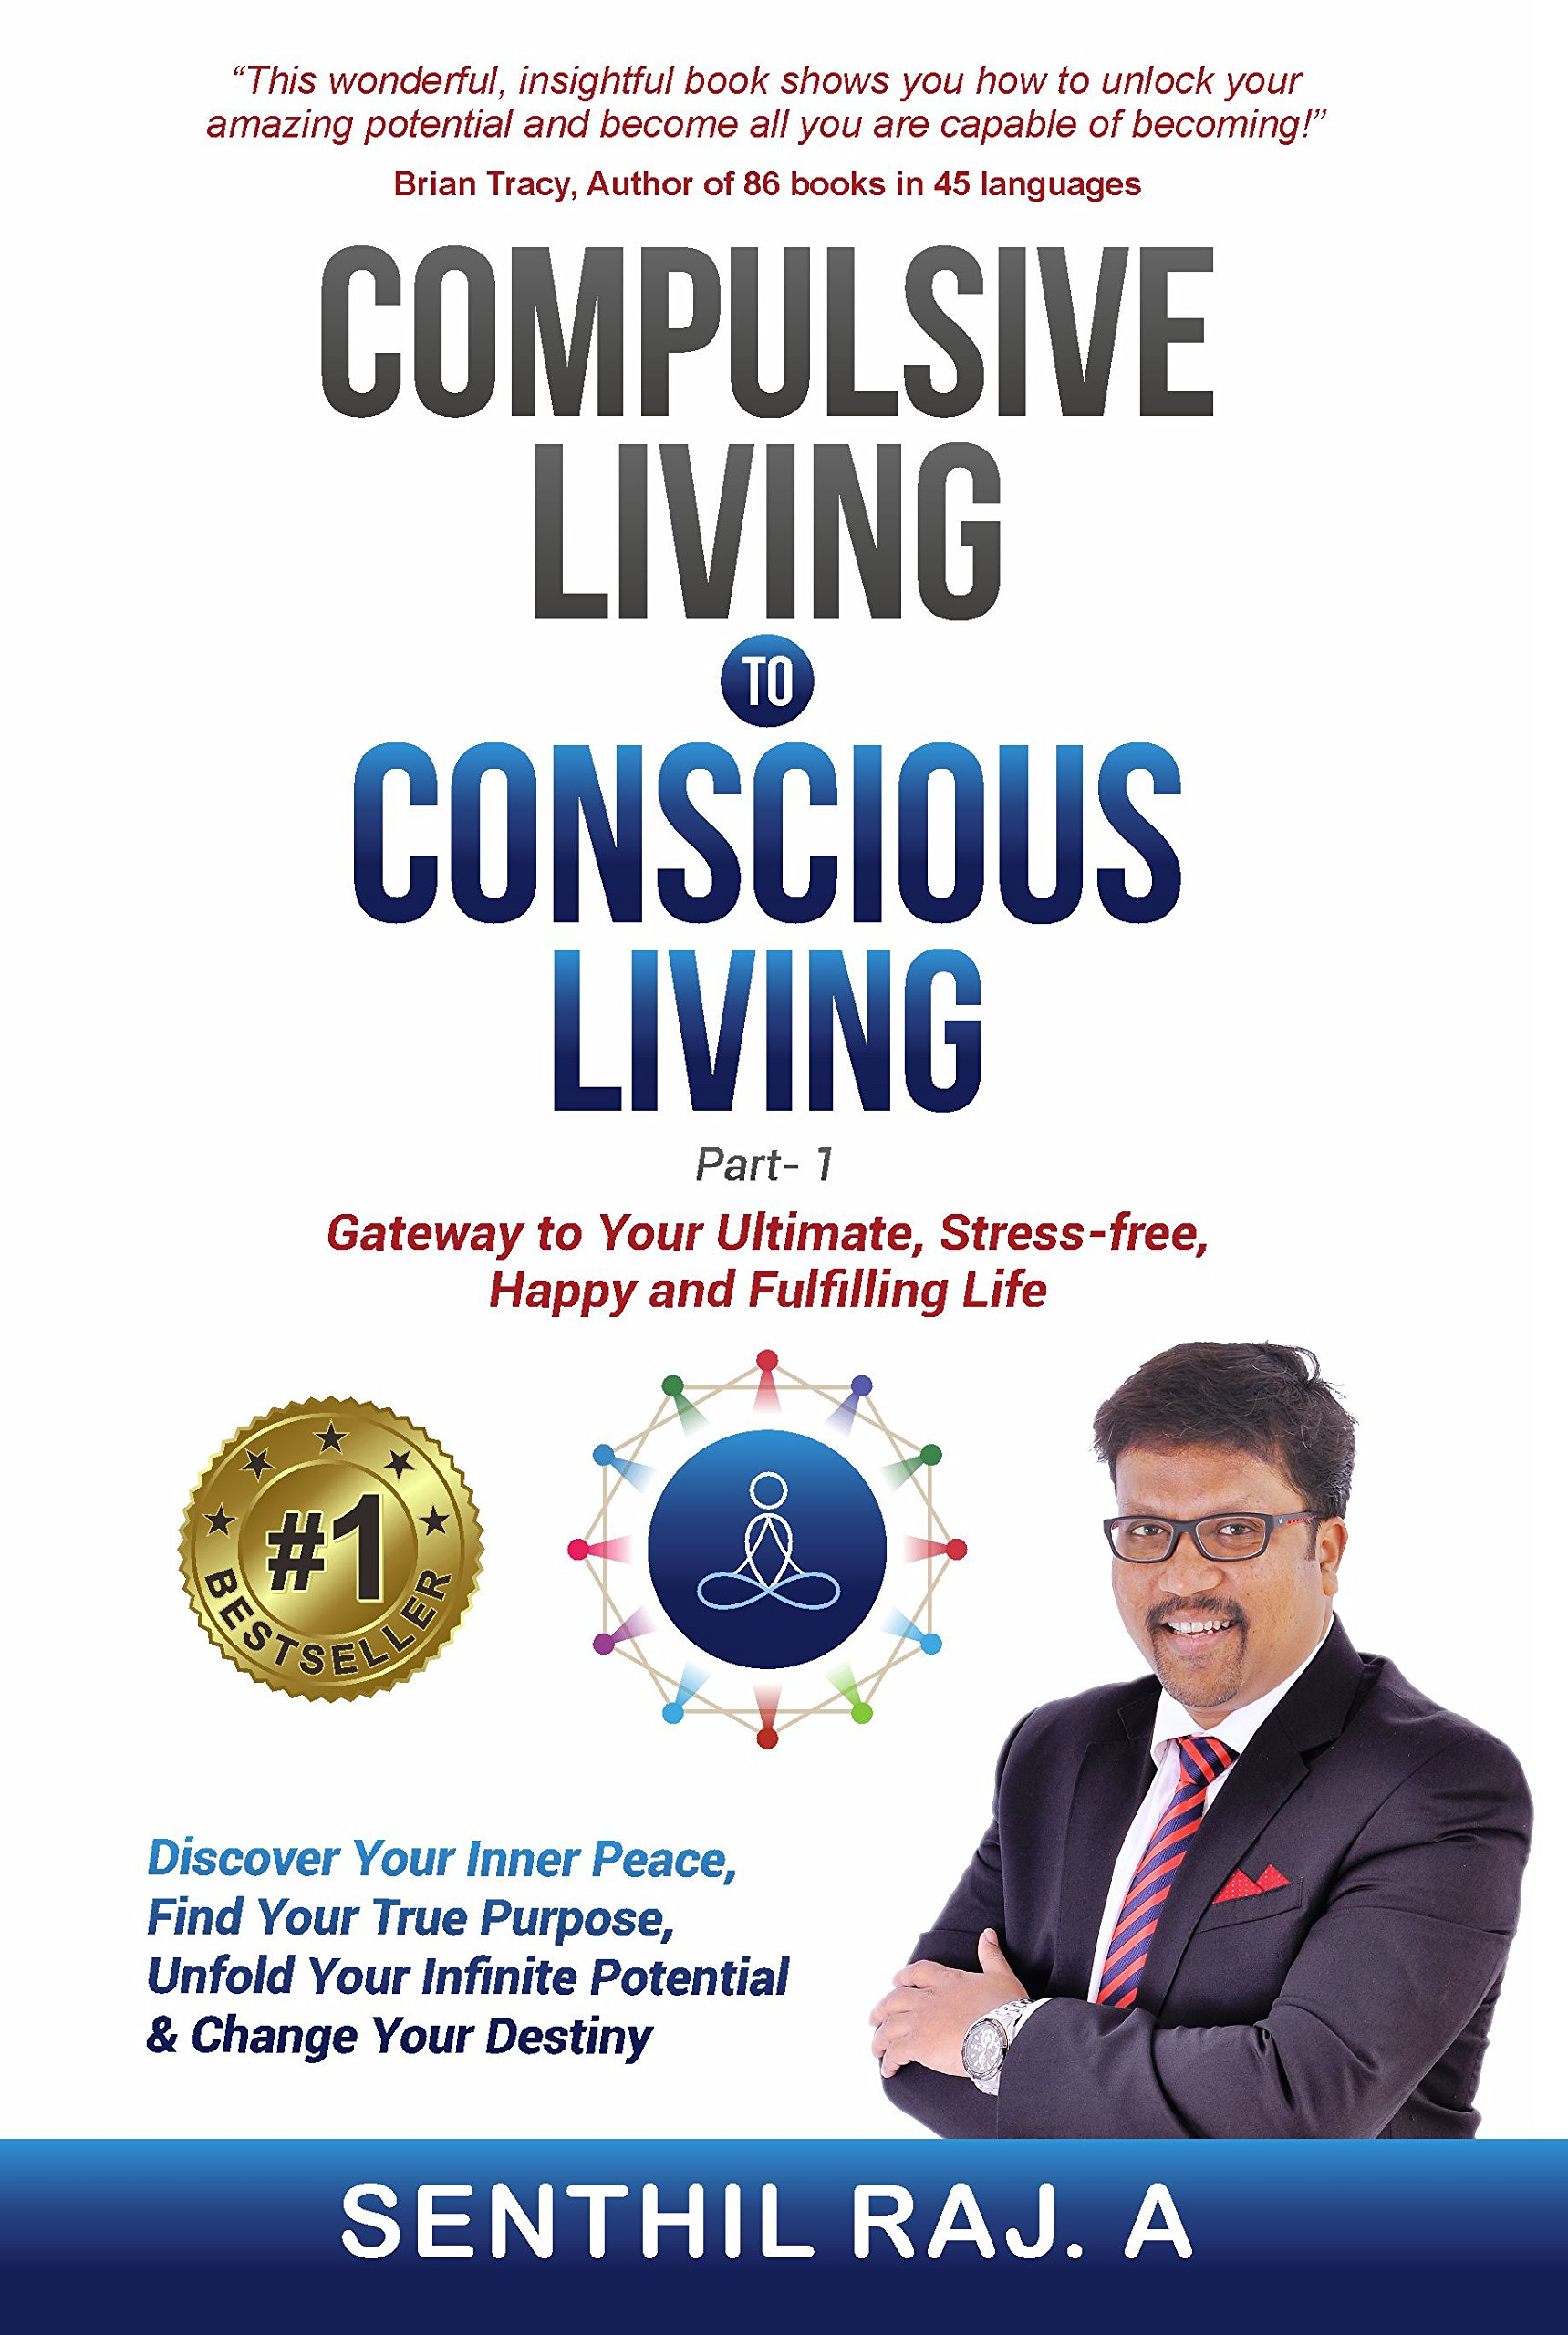 Compulsive Living to Conscious Living: Gateway to Your Ultimate, Stress-free, Happy and Fulfilling Life